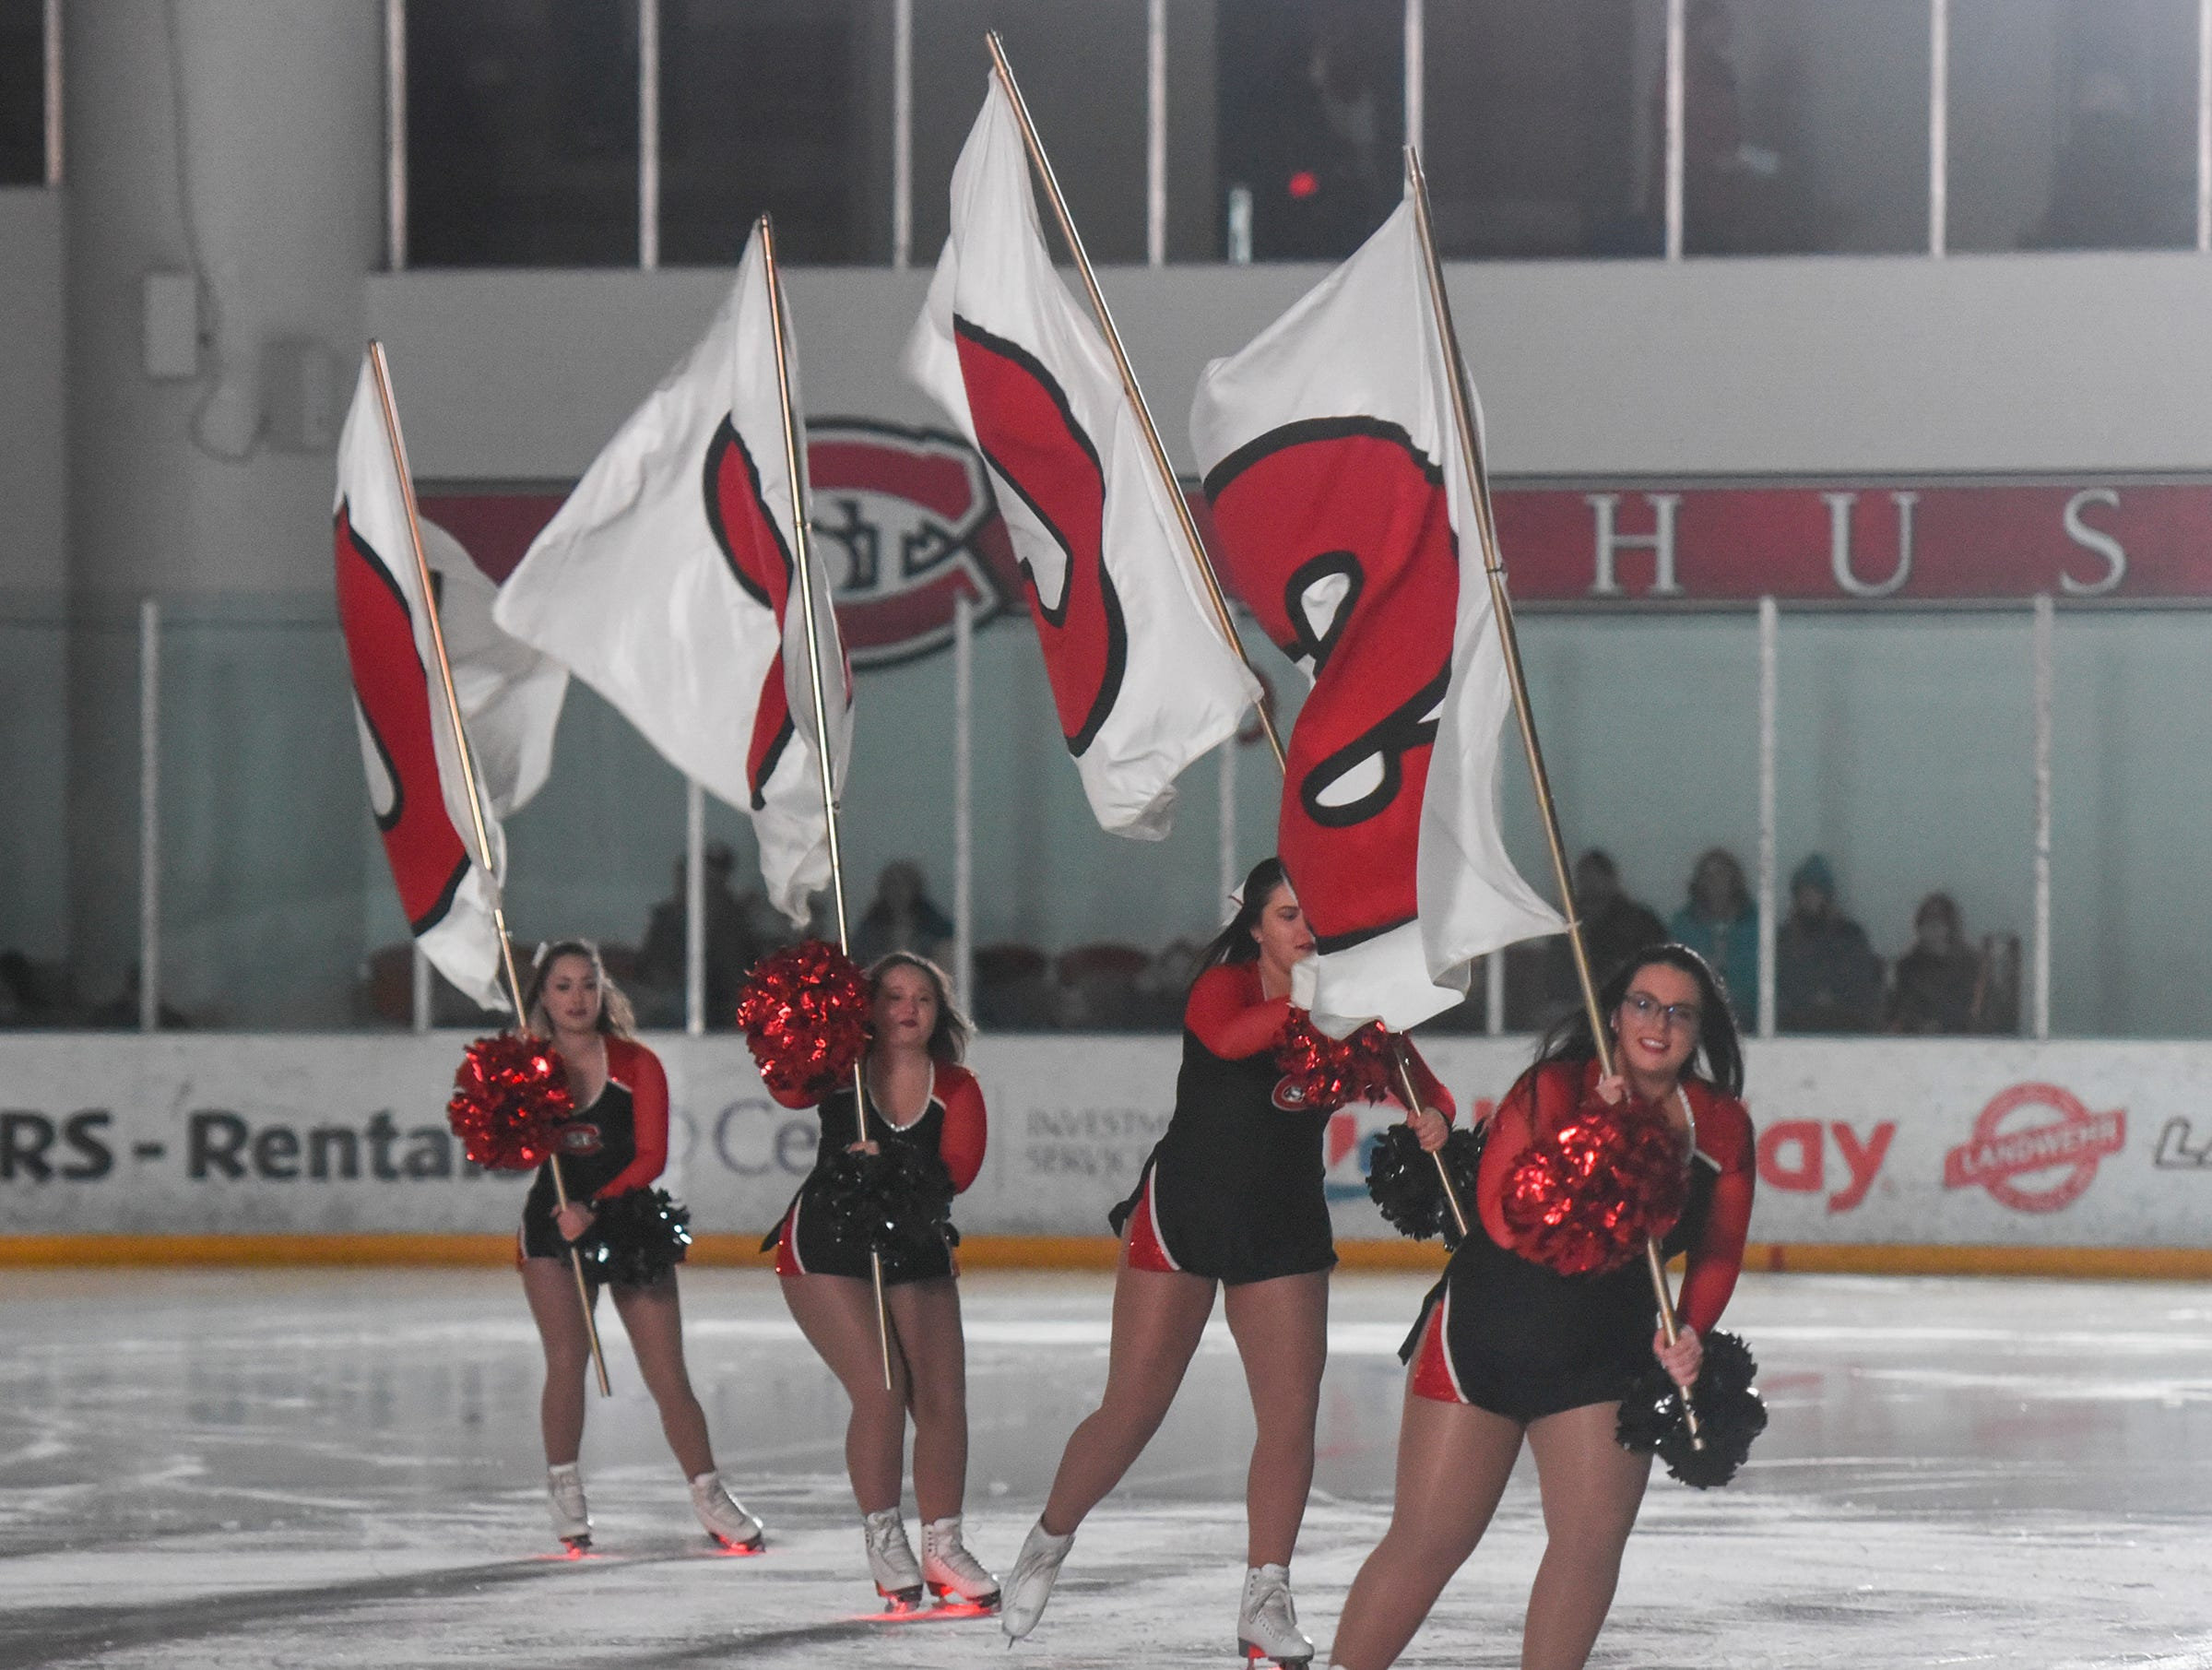 Cheerleaders for St. Cloud State take the ice before the start of the Friday, Feb. 8, game at the Herb Brooks National Hockey Center in St. Cloud.